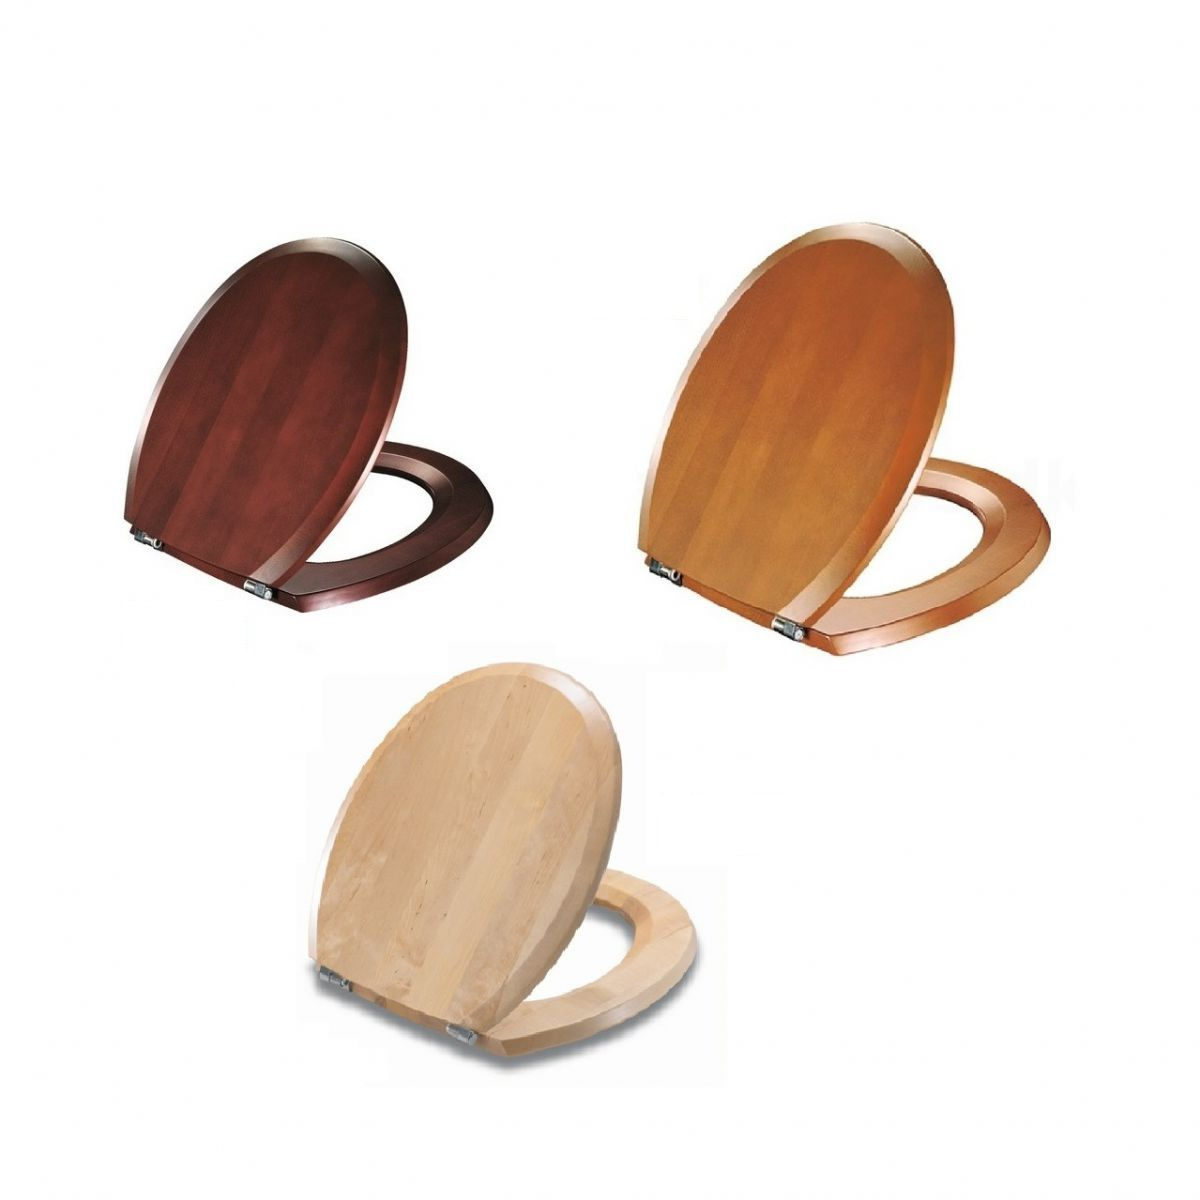 Strange Pressalit Selandia Luxury Wooden Toilet Seat Gmtry Best Dining Table And Chair Ideas Images Gmtryco